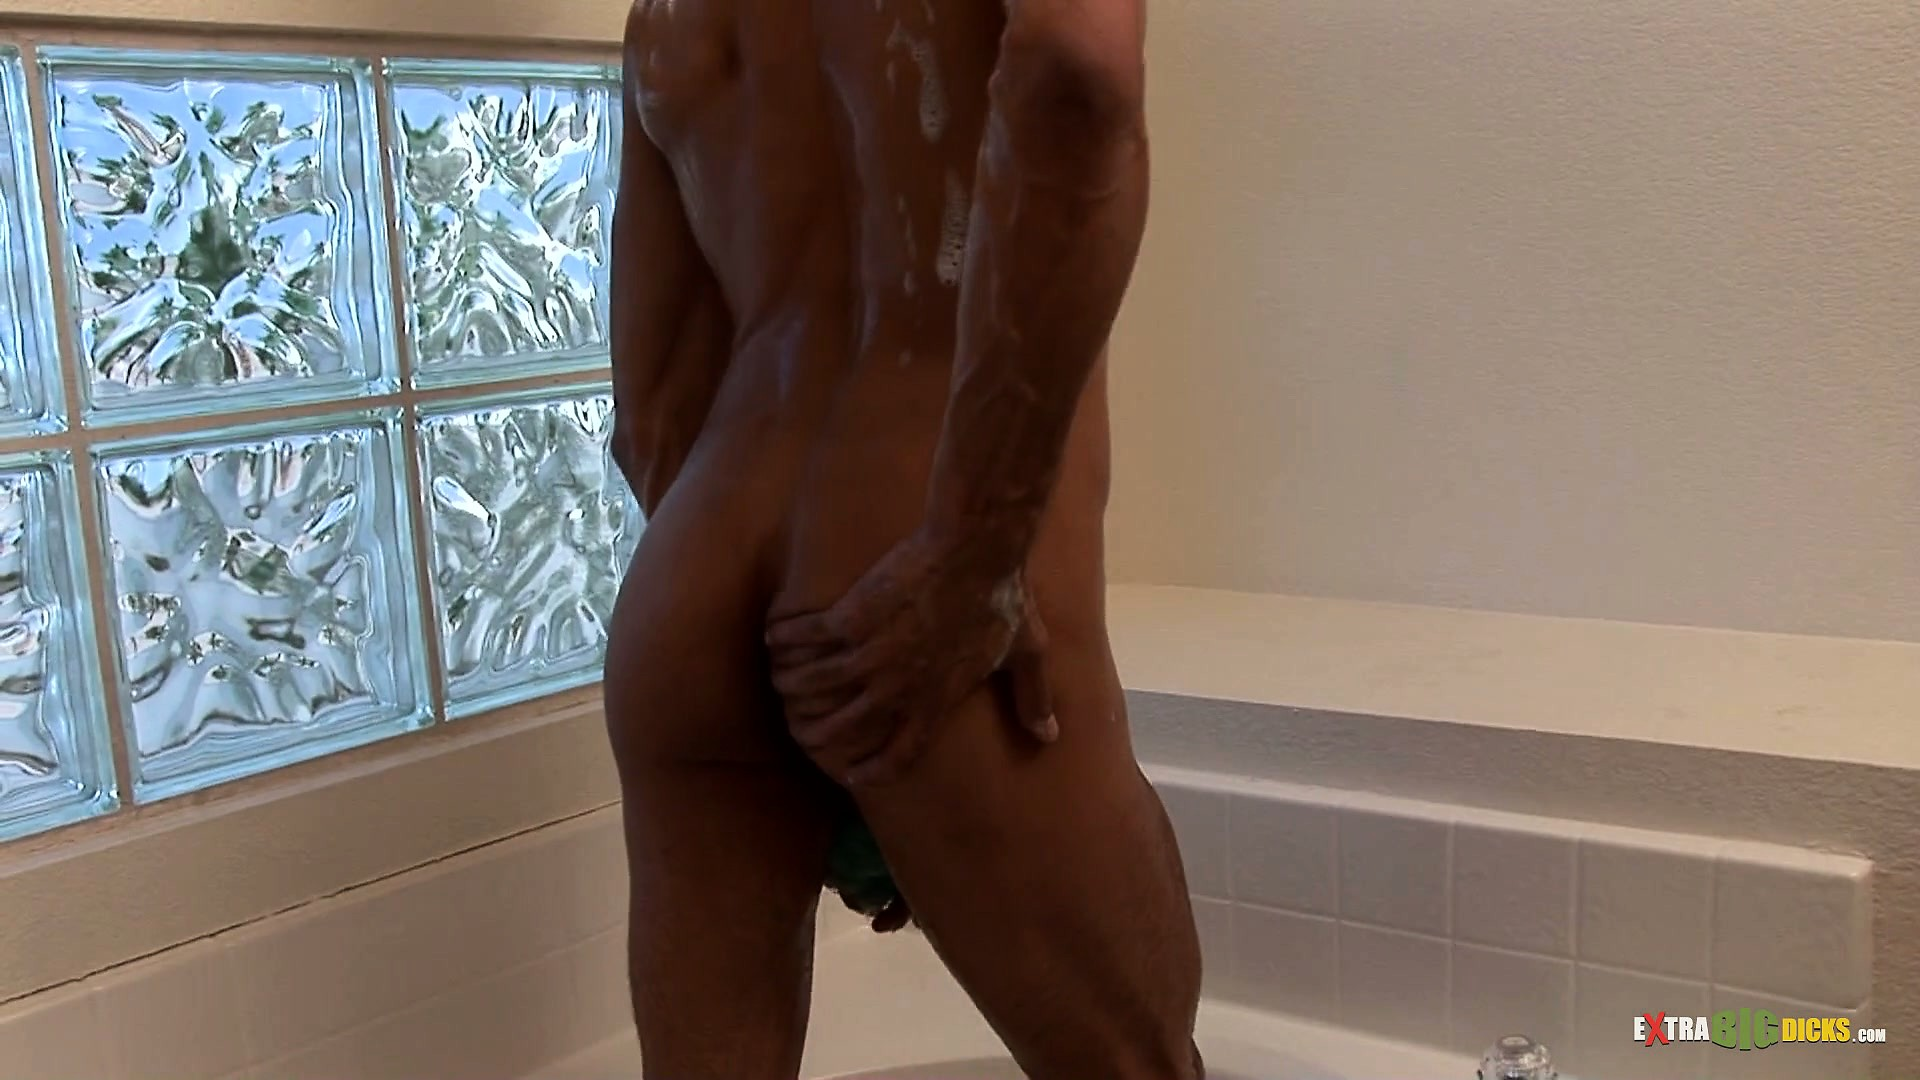 Porno Video of Clean Masturbation Action As This Guy Works Solo In The Bathtub